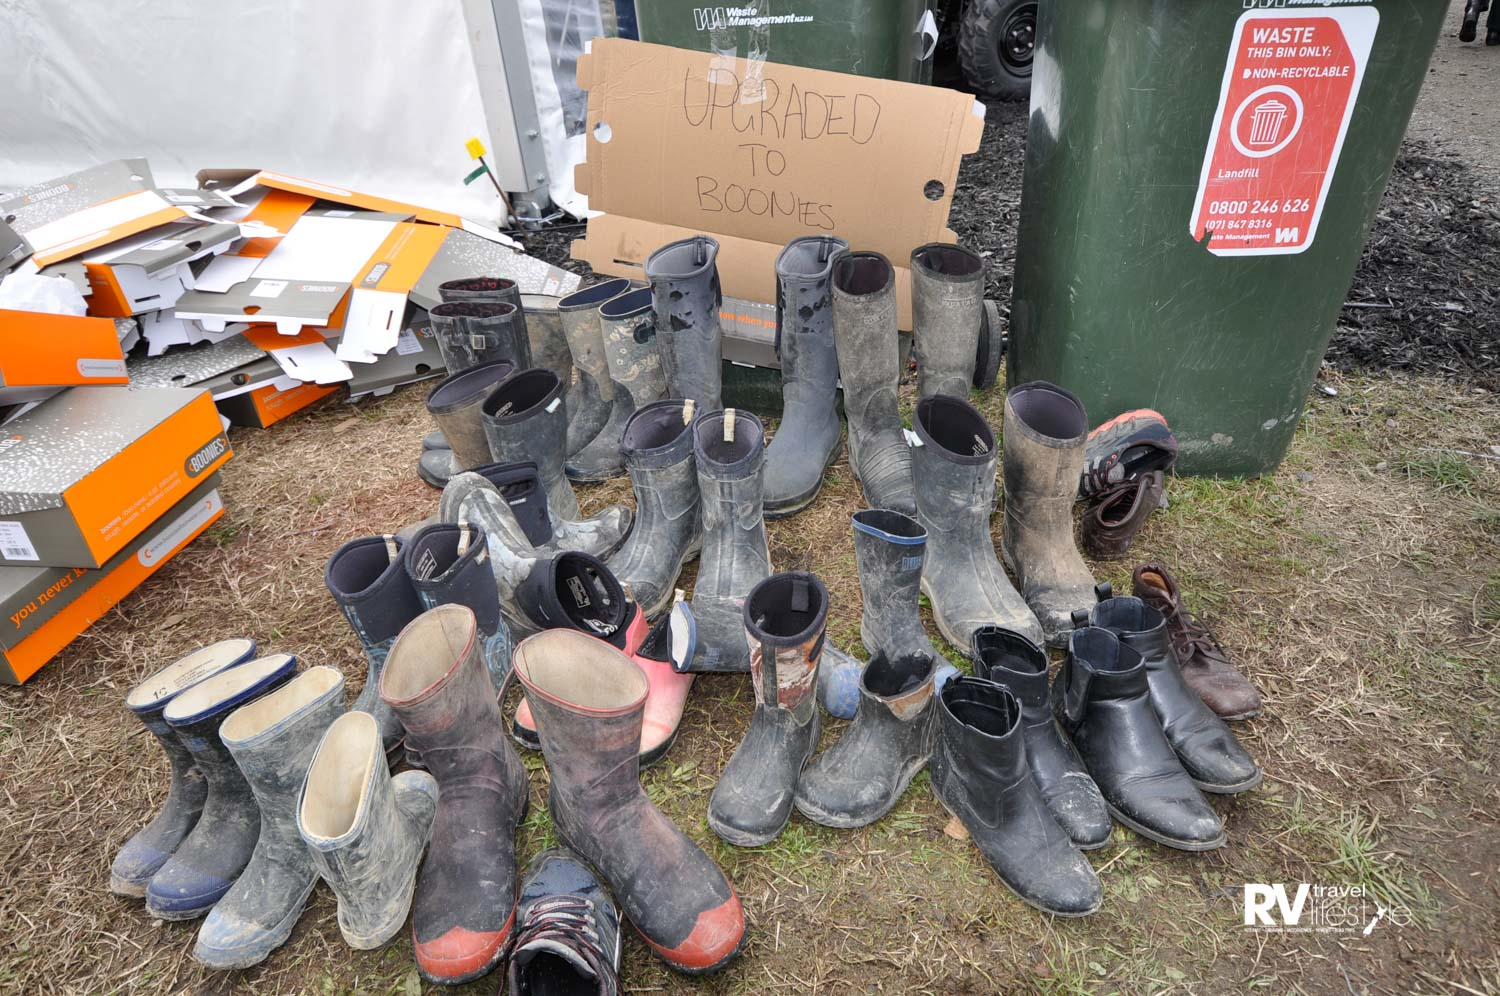 A gumboot trade-in pile at Fieldays